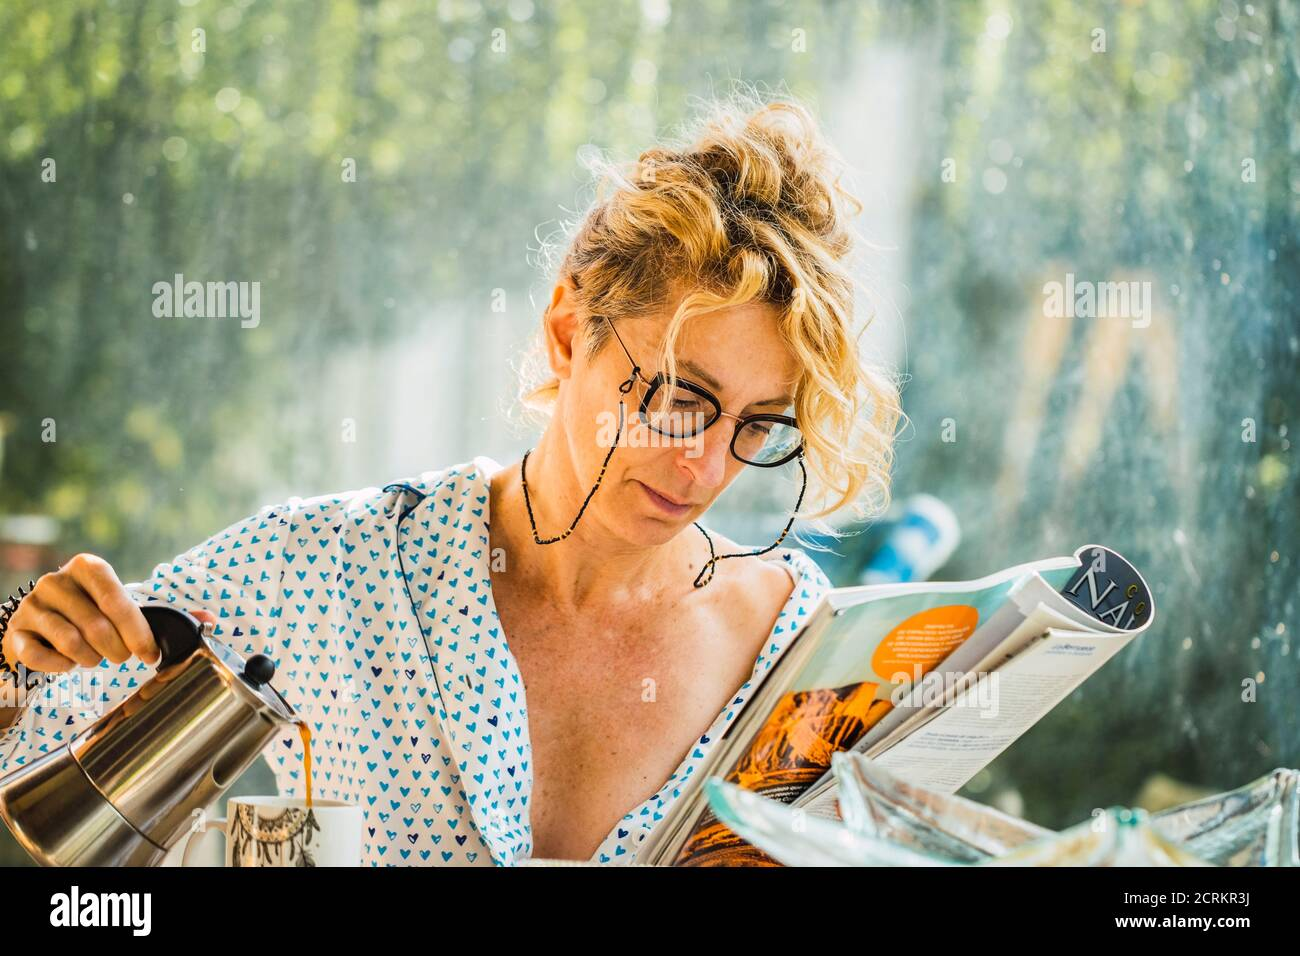 Blonde young mature woman with glasses in pyjamas at home in breakfast time, reading a magazine and preparing a cup of coffee. Stock Photo